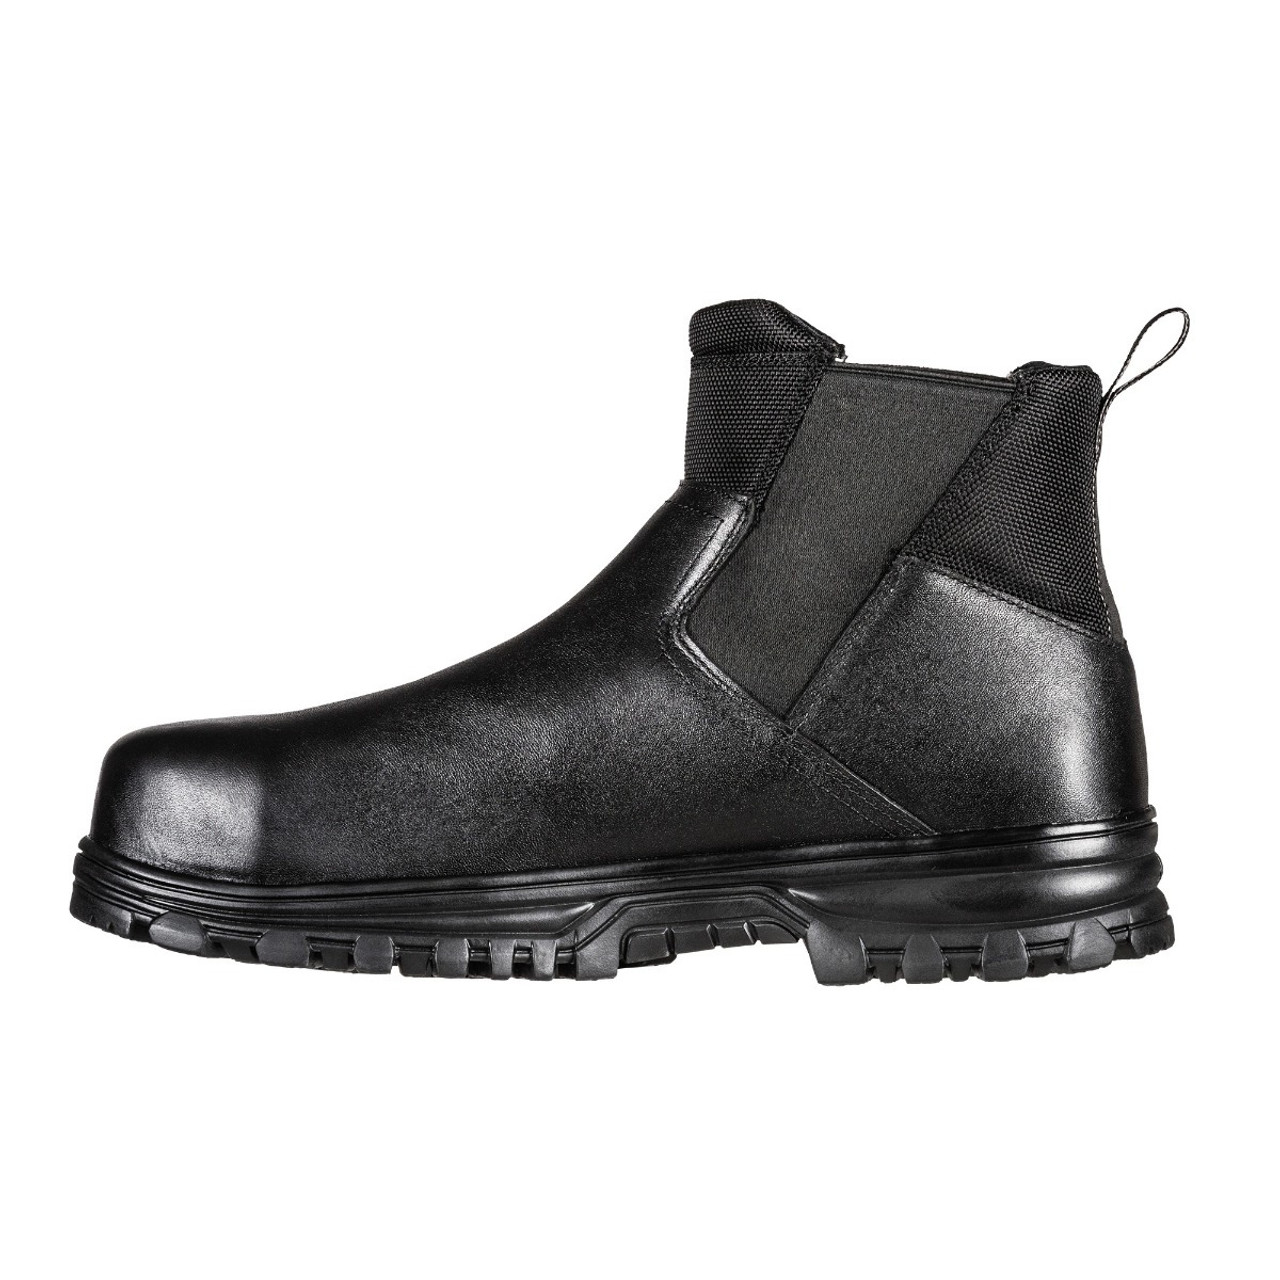 5.11 TACTICAL COMPANY 3.0 SLIP-ON CARBON TAC TOE DUTY BOOTS 12421